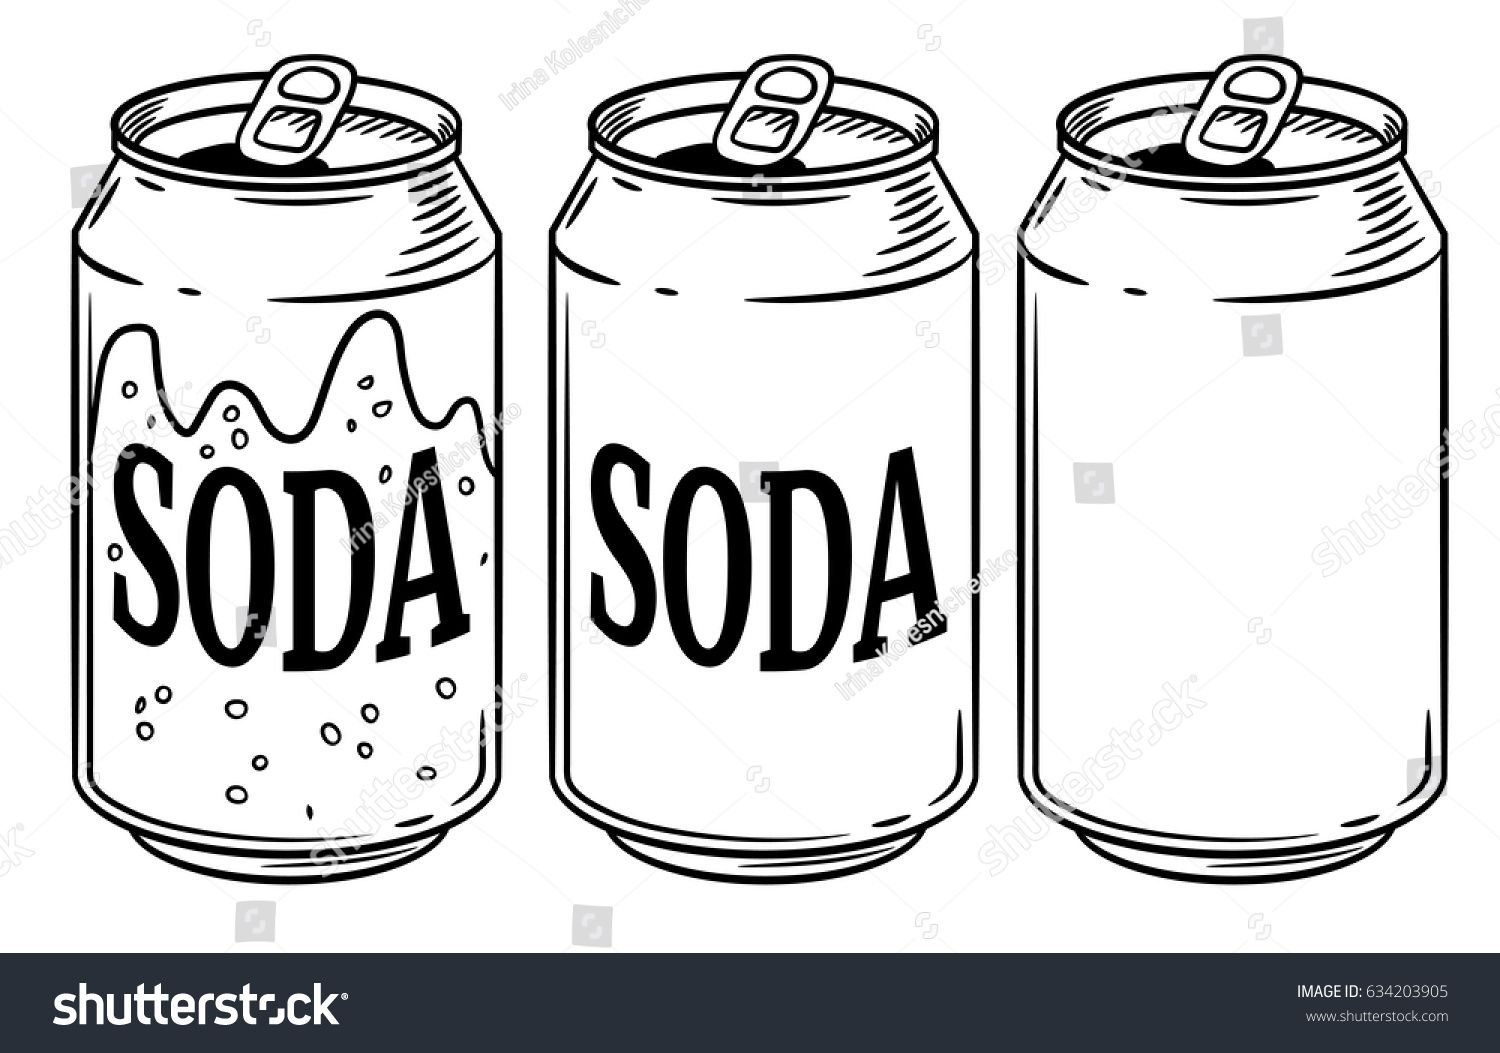 Vector Illustration Soda Can Isolated On White Background Hand Drawn Style Sketch For Restaurant Or Cafe Drink Menu Bottle Drawing How To Draw Hands Soda Can